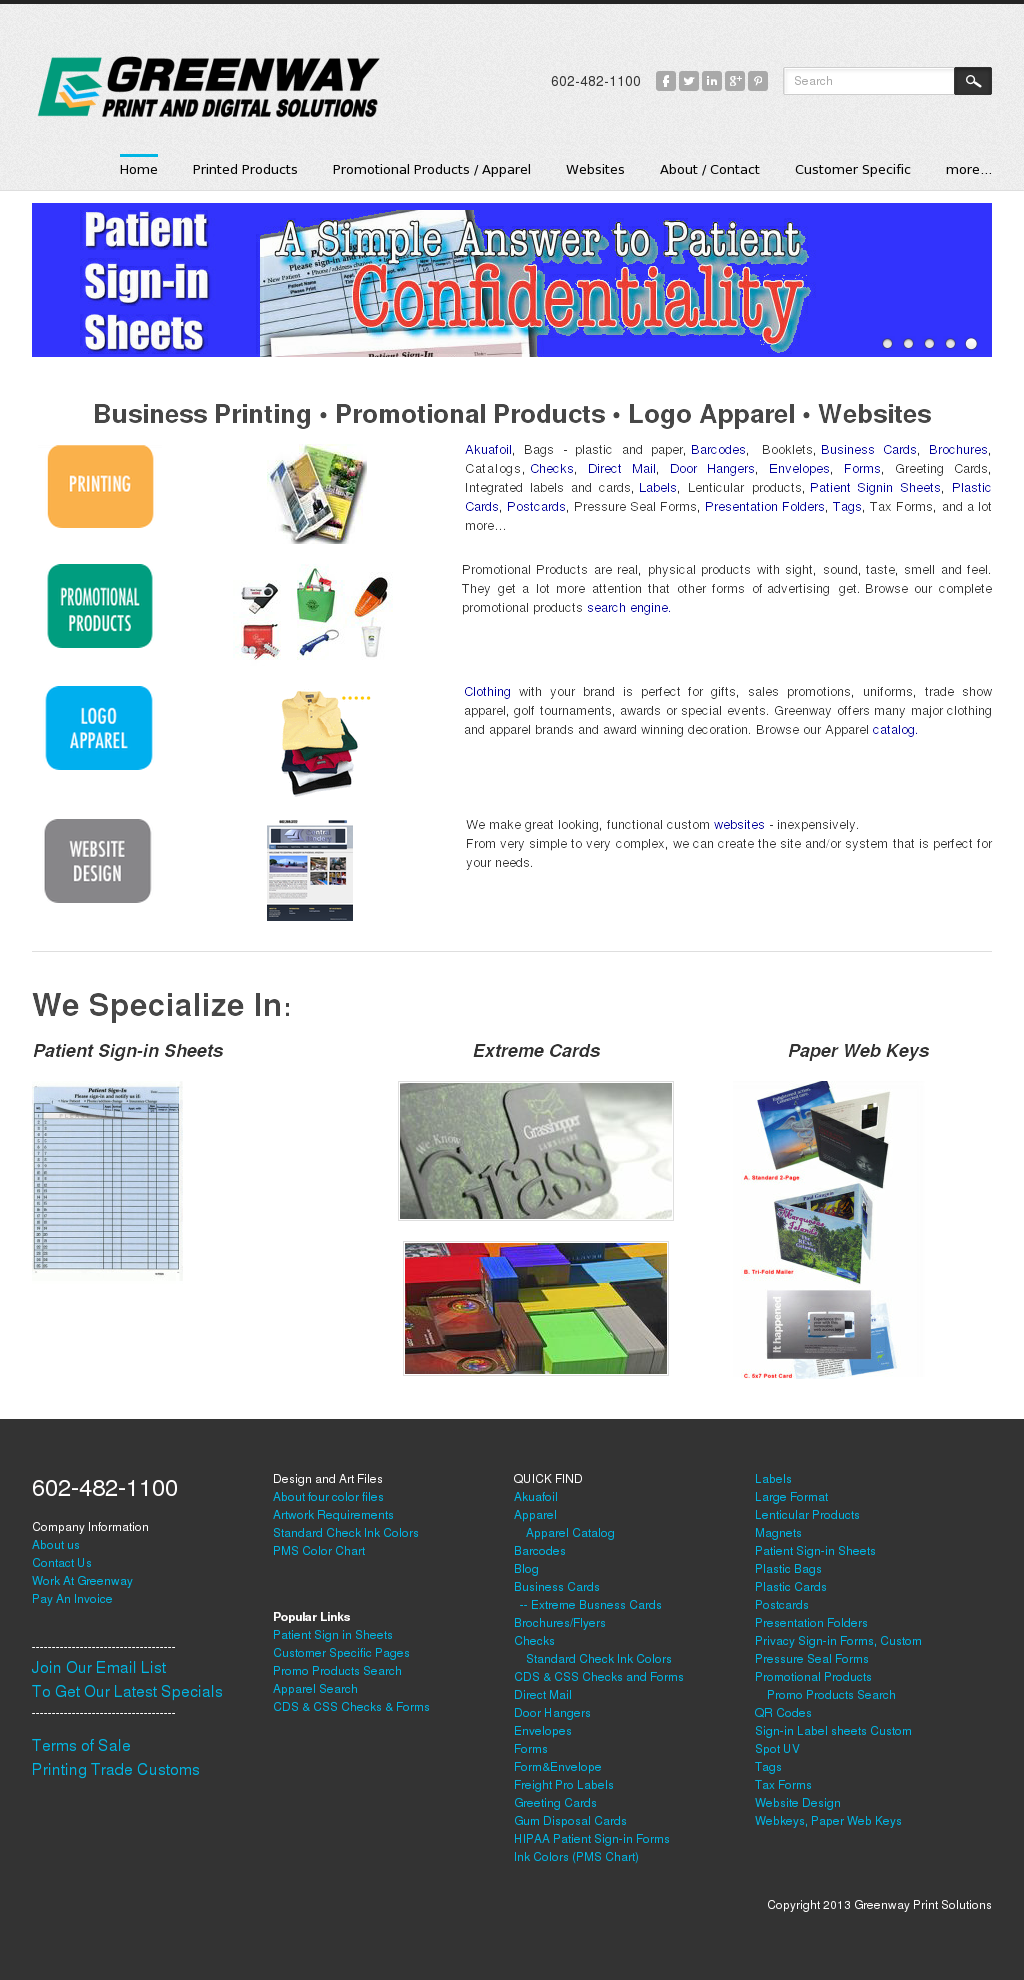 Greenway Print Solutions Competitors, Revenue and Employees - Owler